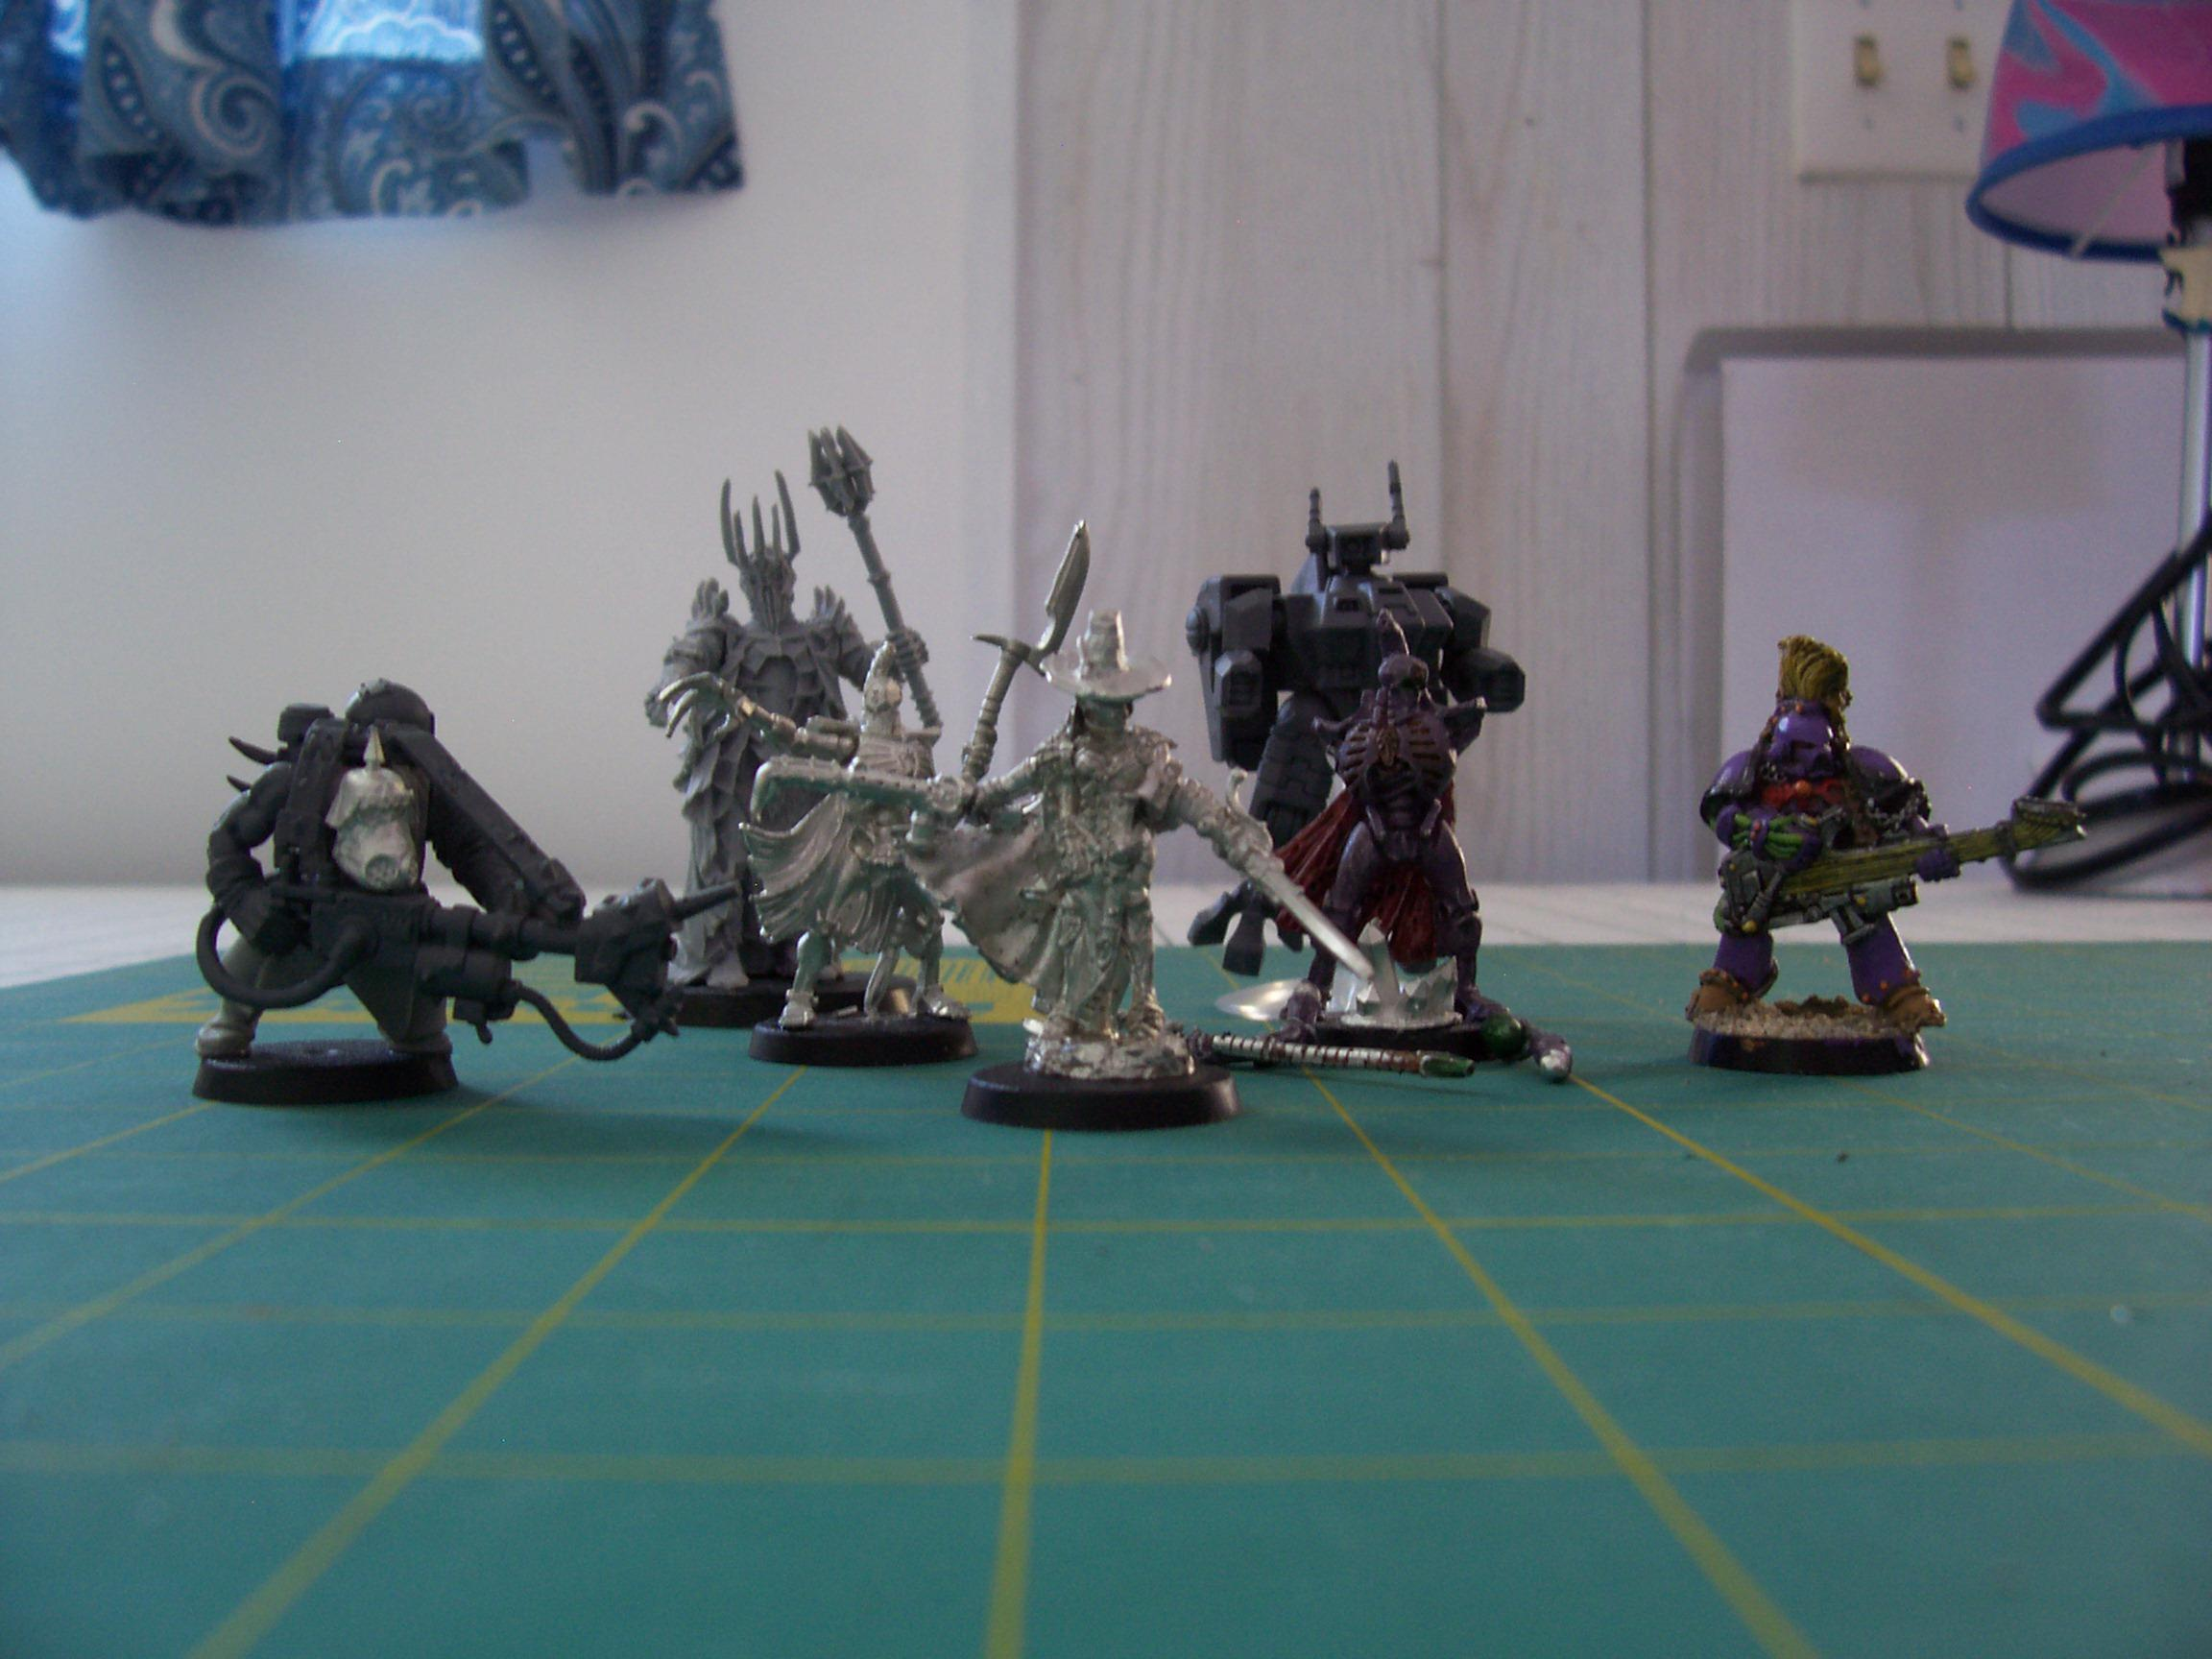 Christmas, Conversion, Crisis Battlesuit, Gift, Inquisitor, Kommando, Lord, Necrons, Noise, Of, Orks, Rings, Sauron, Space Marines, Suit, Tau, The